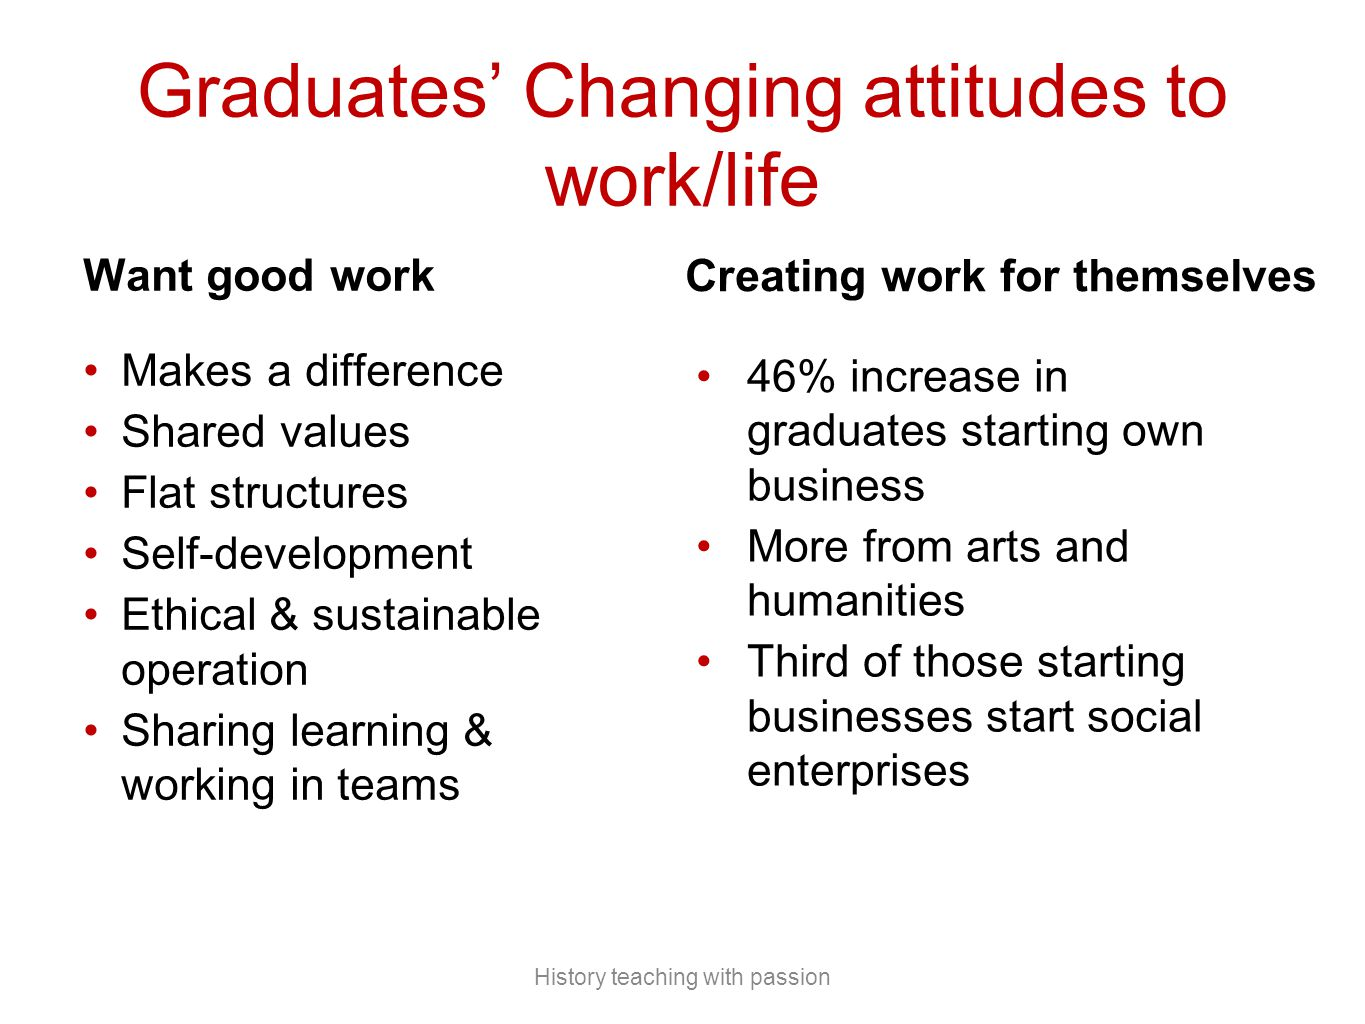 Graduates' Changing attitudes to work/life Want good work Makes a difference Shared values Flat structures Self-development Ethical & sustainable operation Sharing learning & working in teams Creating work for themselves 46% increase in graduates starting own business More from arts and humanities Third of those starting businesses start social enterprises History teaching with passion